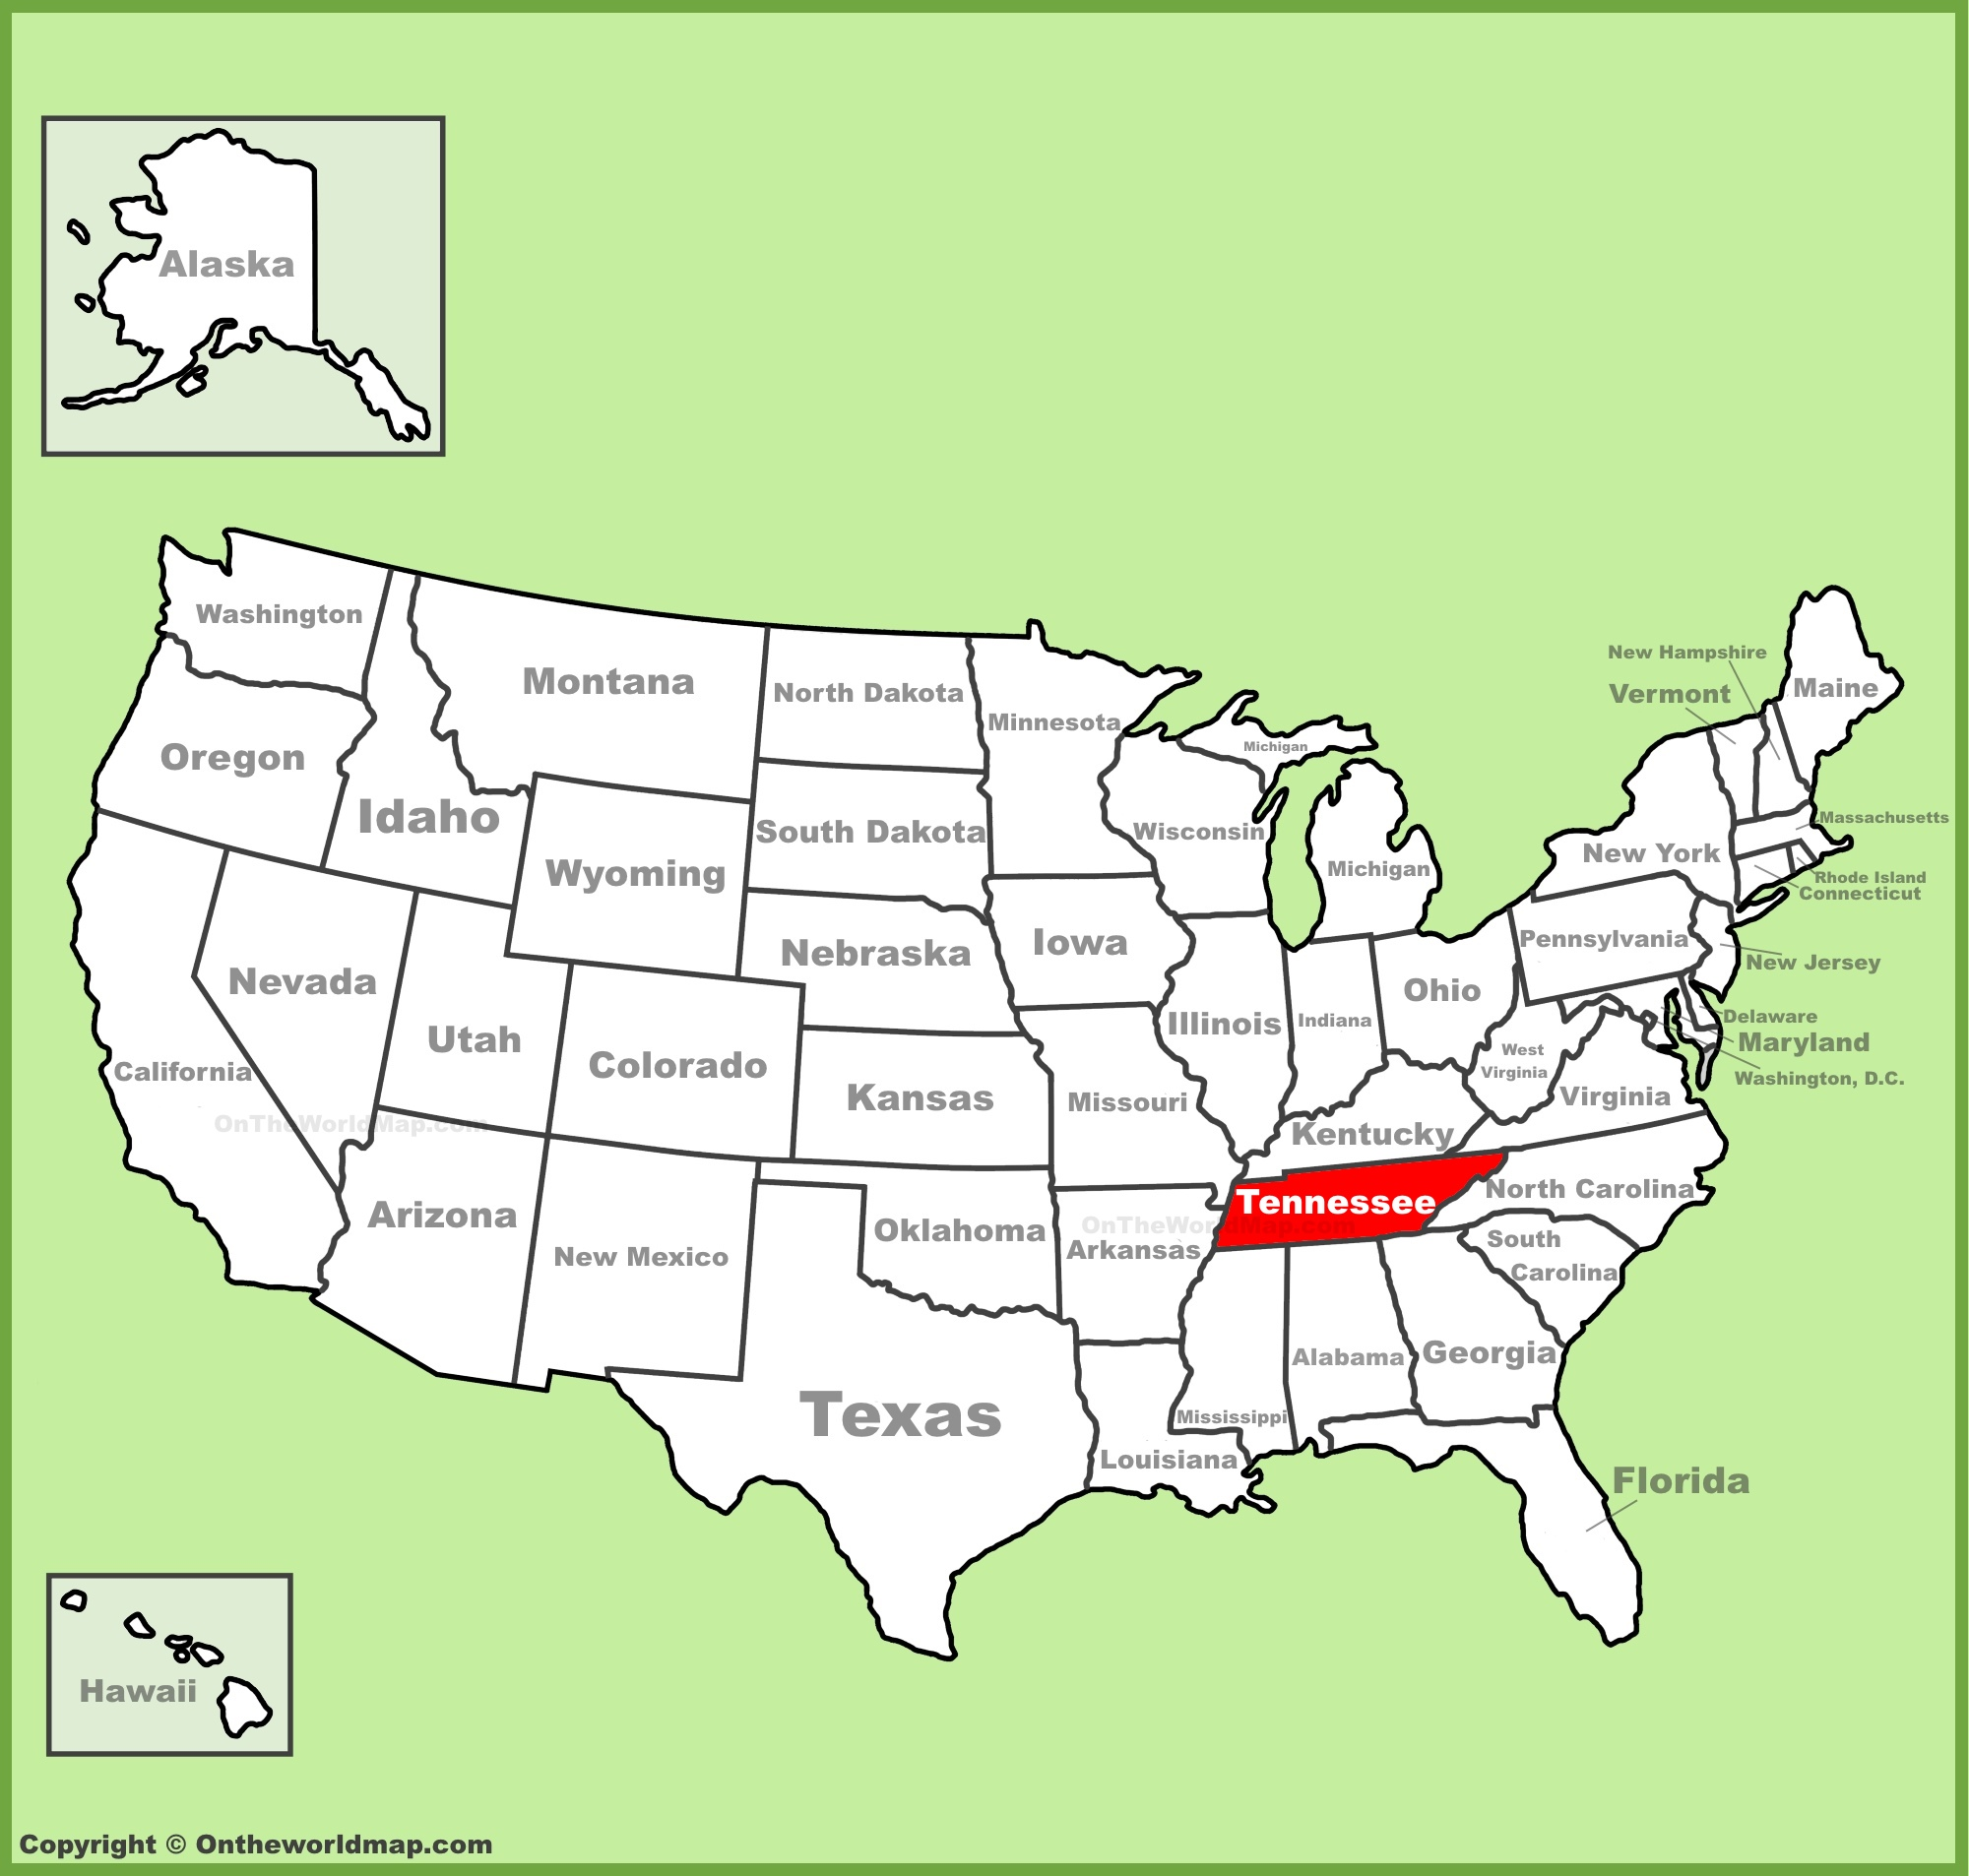 Tennessee Map Us Tennessee State Maps | USA | Maps of Tennessee (TN) Tennessee Map Us